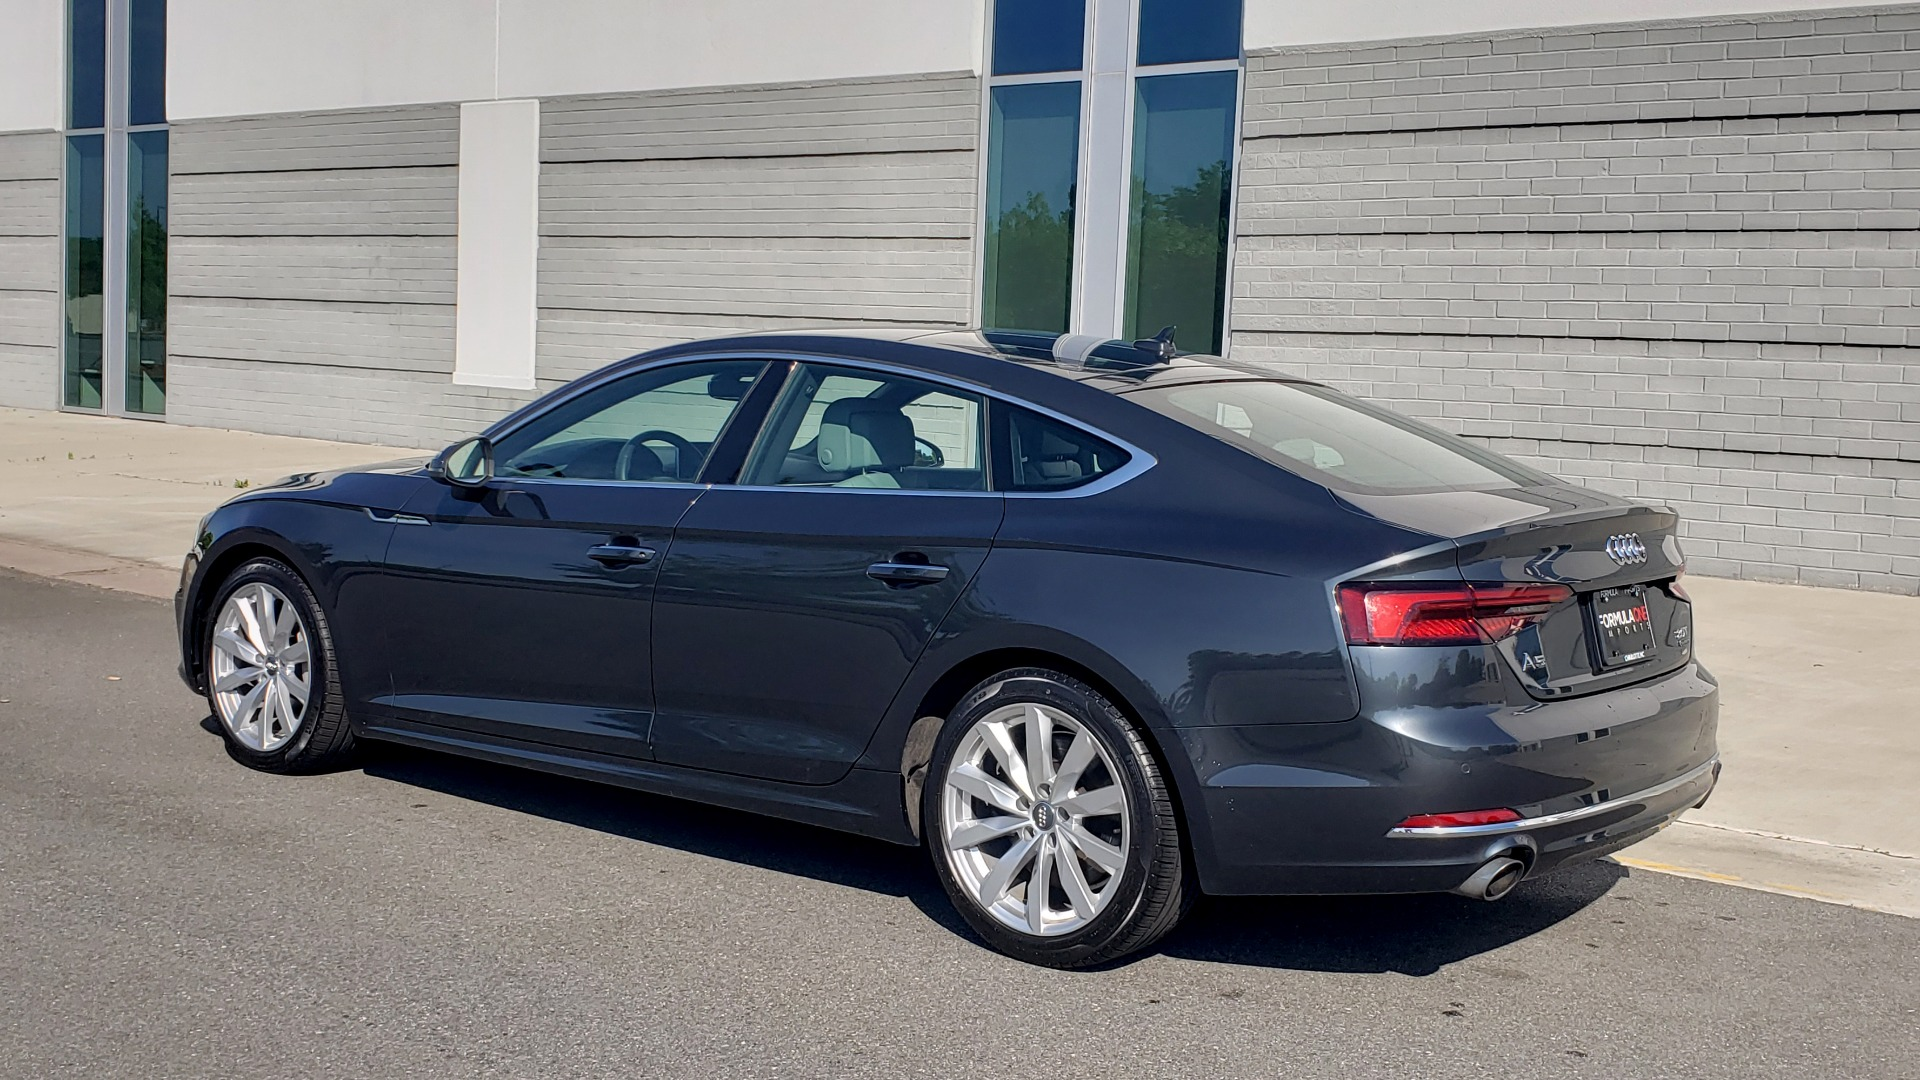 Used 2018 Audi A5 SPORTBACK PREMIUM PLUS 2.0T / AWD / NAV / B&O SND / SUNROOF / REARVIEW for sale Sold at Formula Imports in Charlotte NC 28227 5